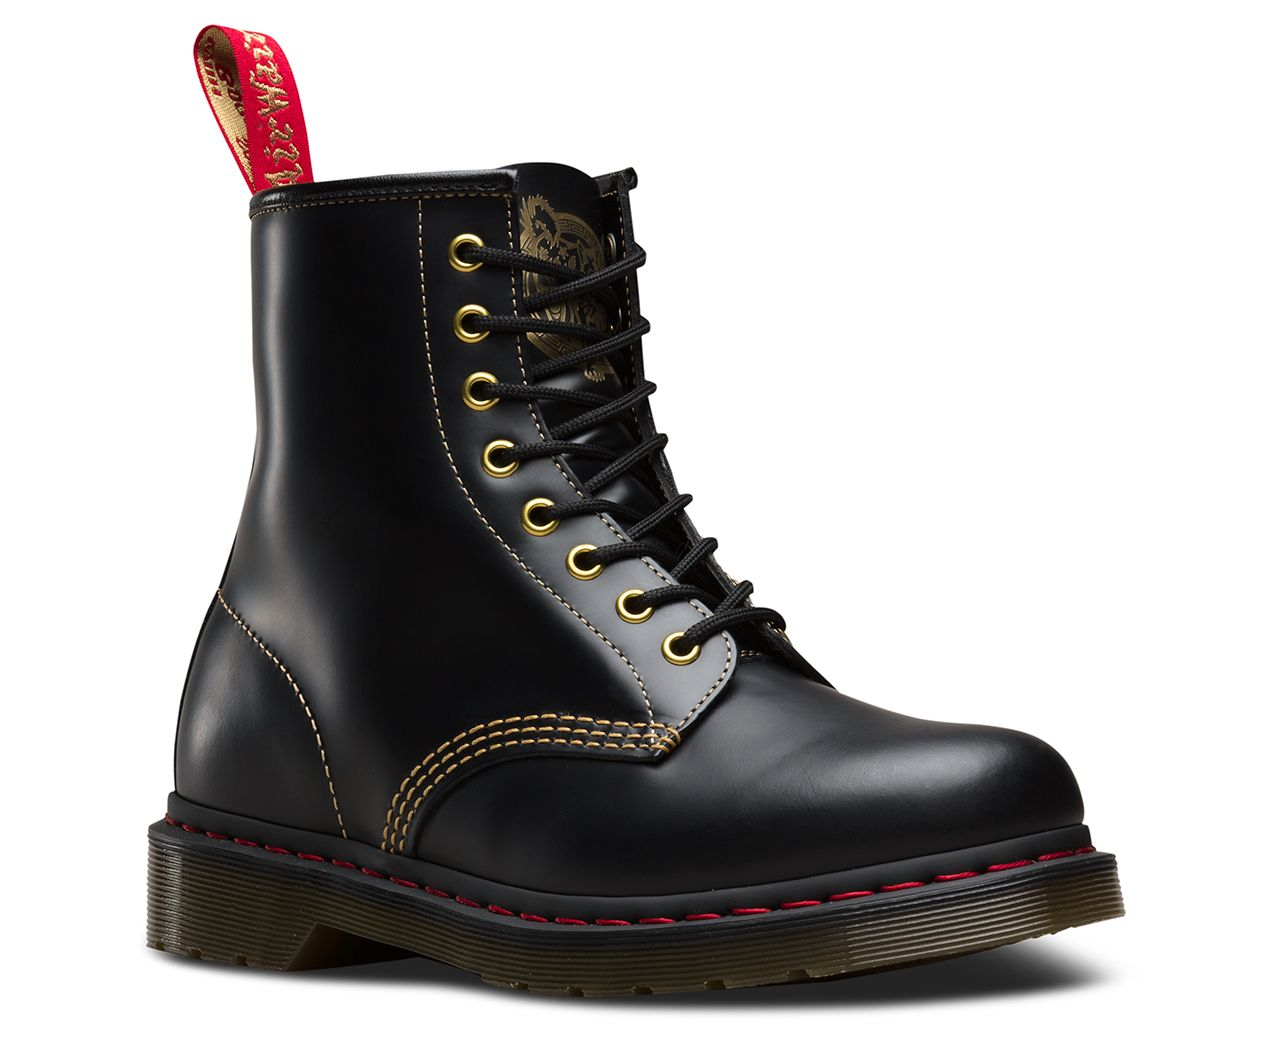 DR MARTENS 1460 YEAR OF THE DOG